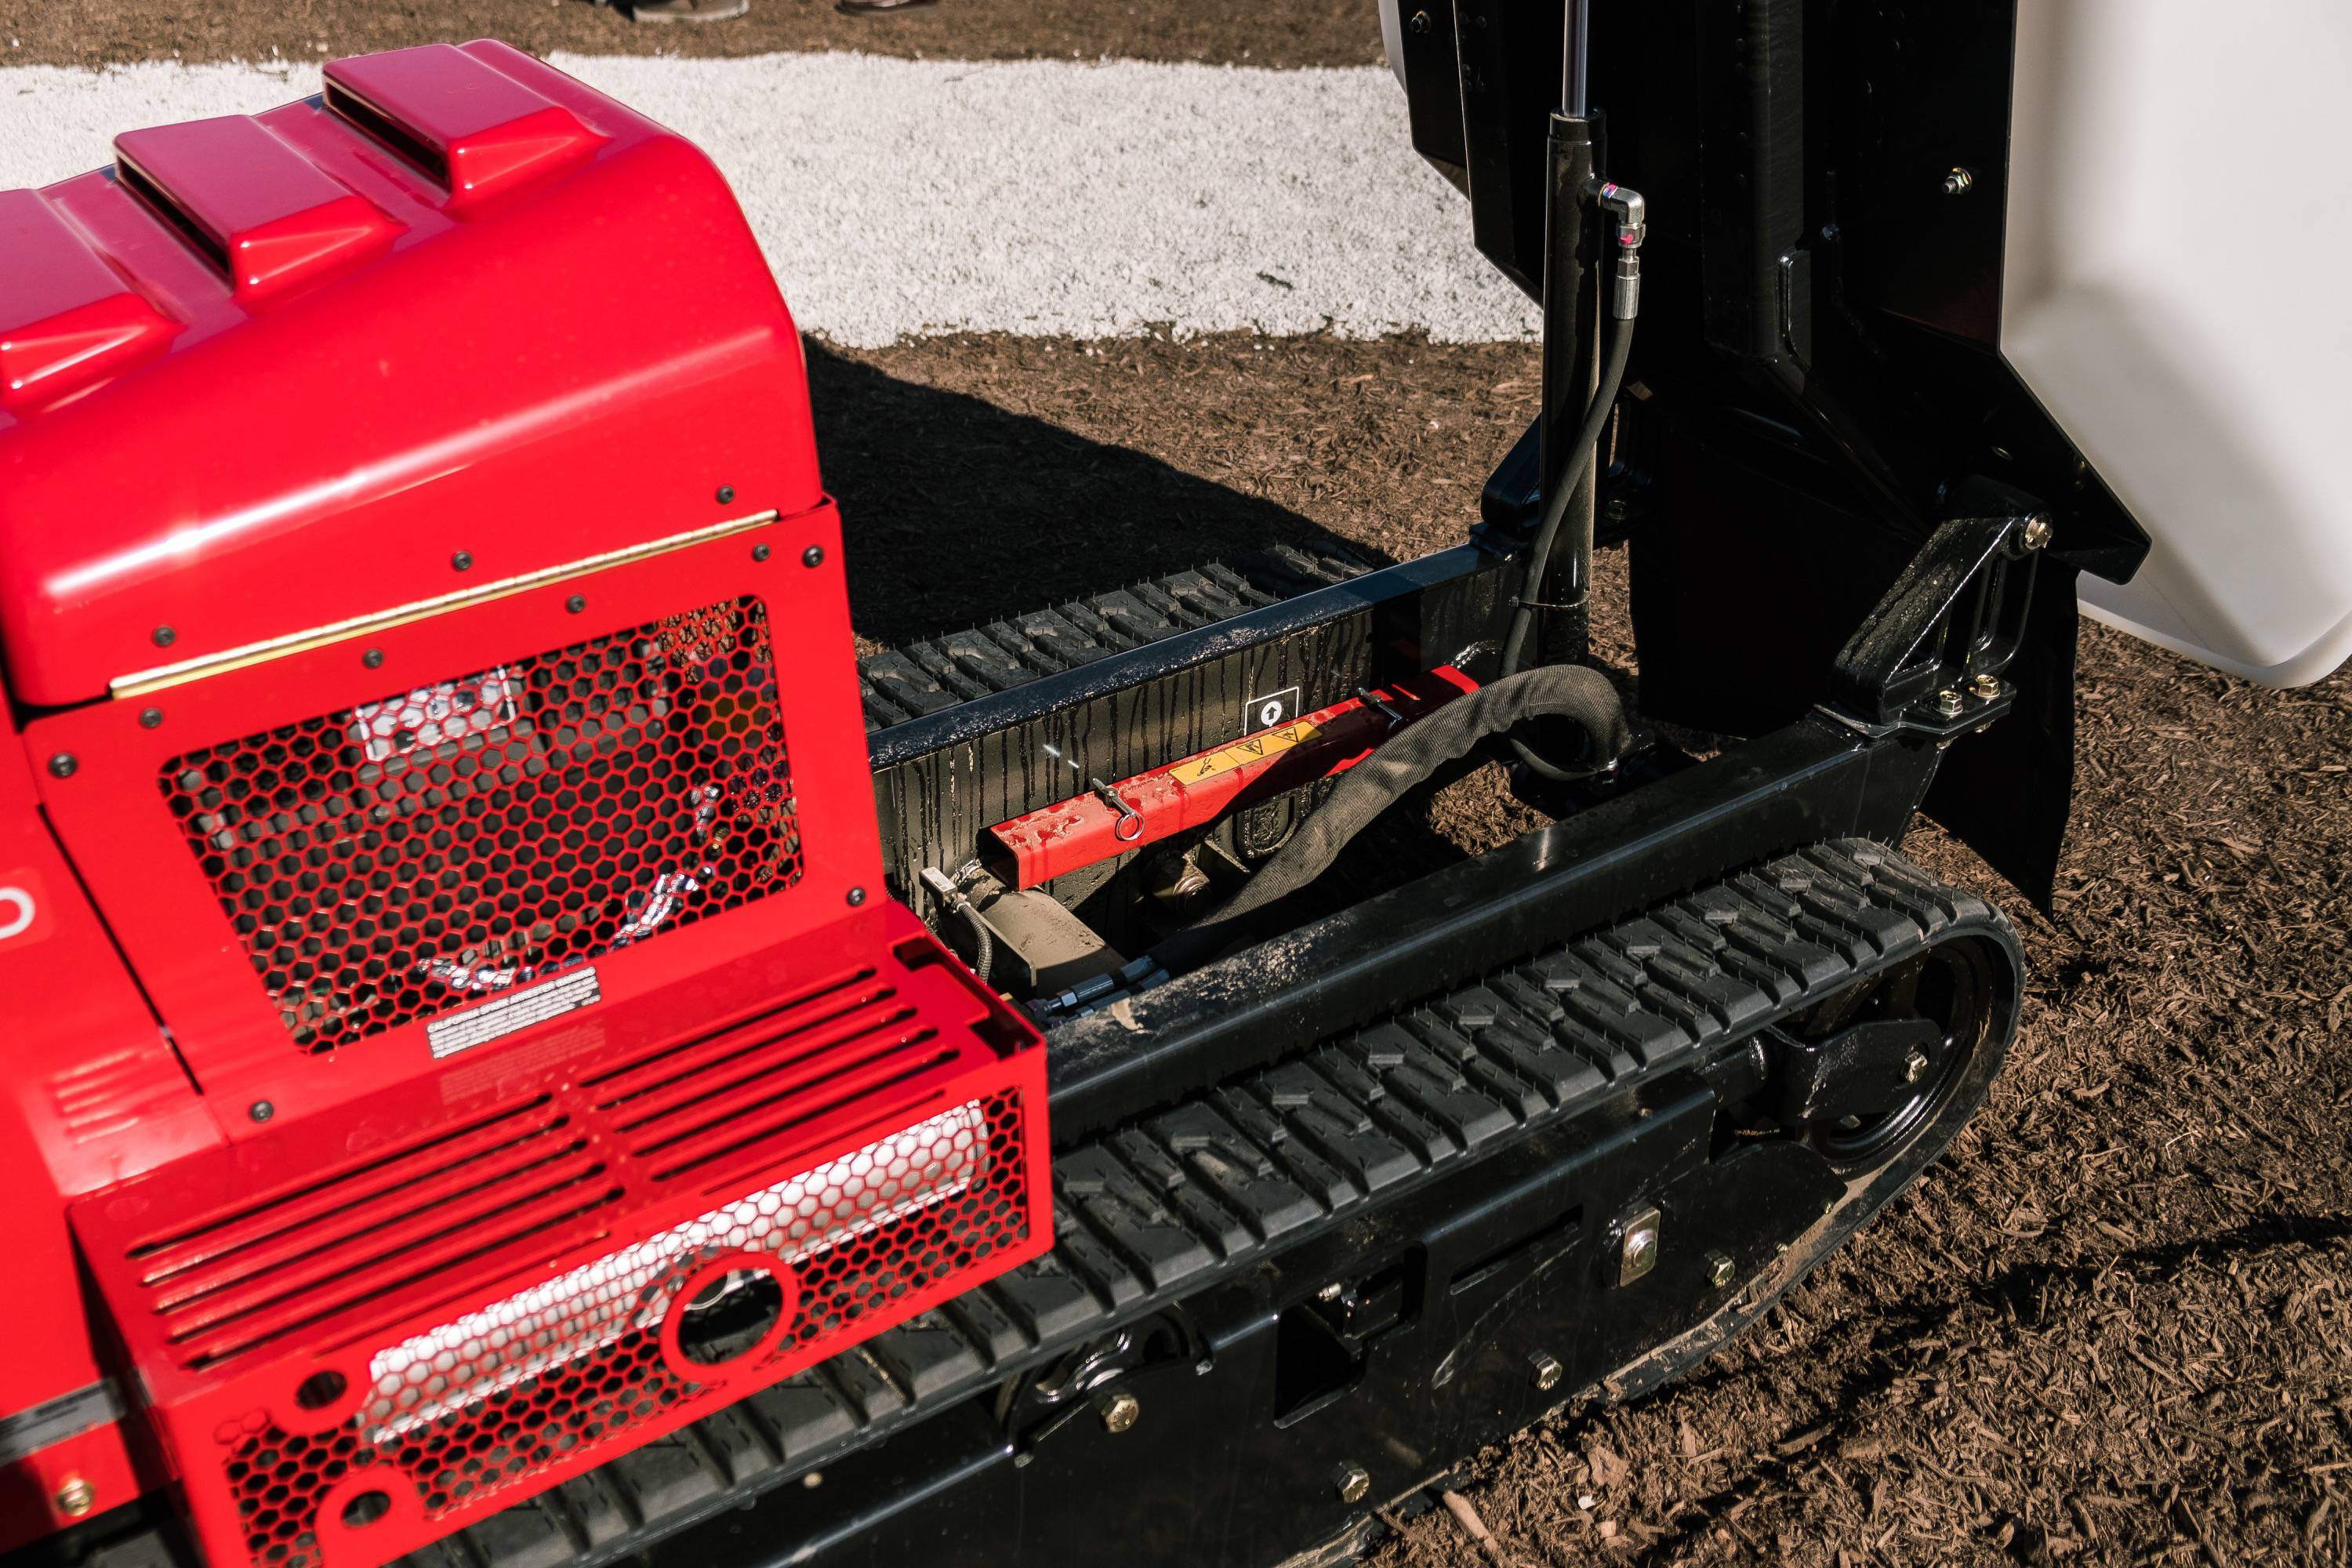 Toro's new MB TX 2500 Mud Buggy is a versatile, easy to